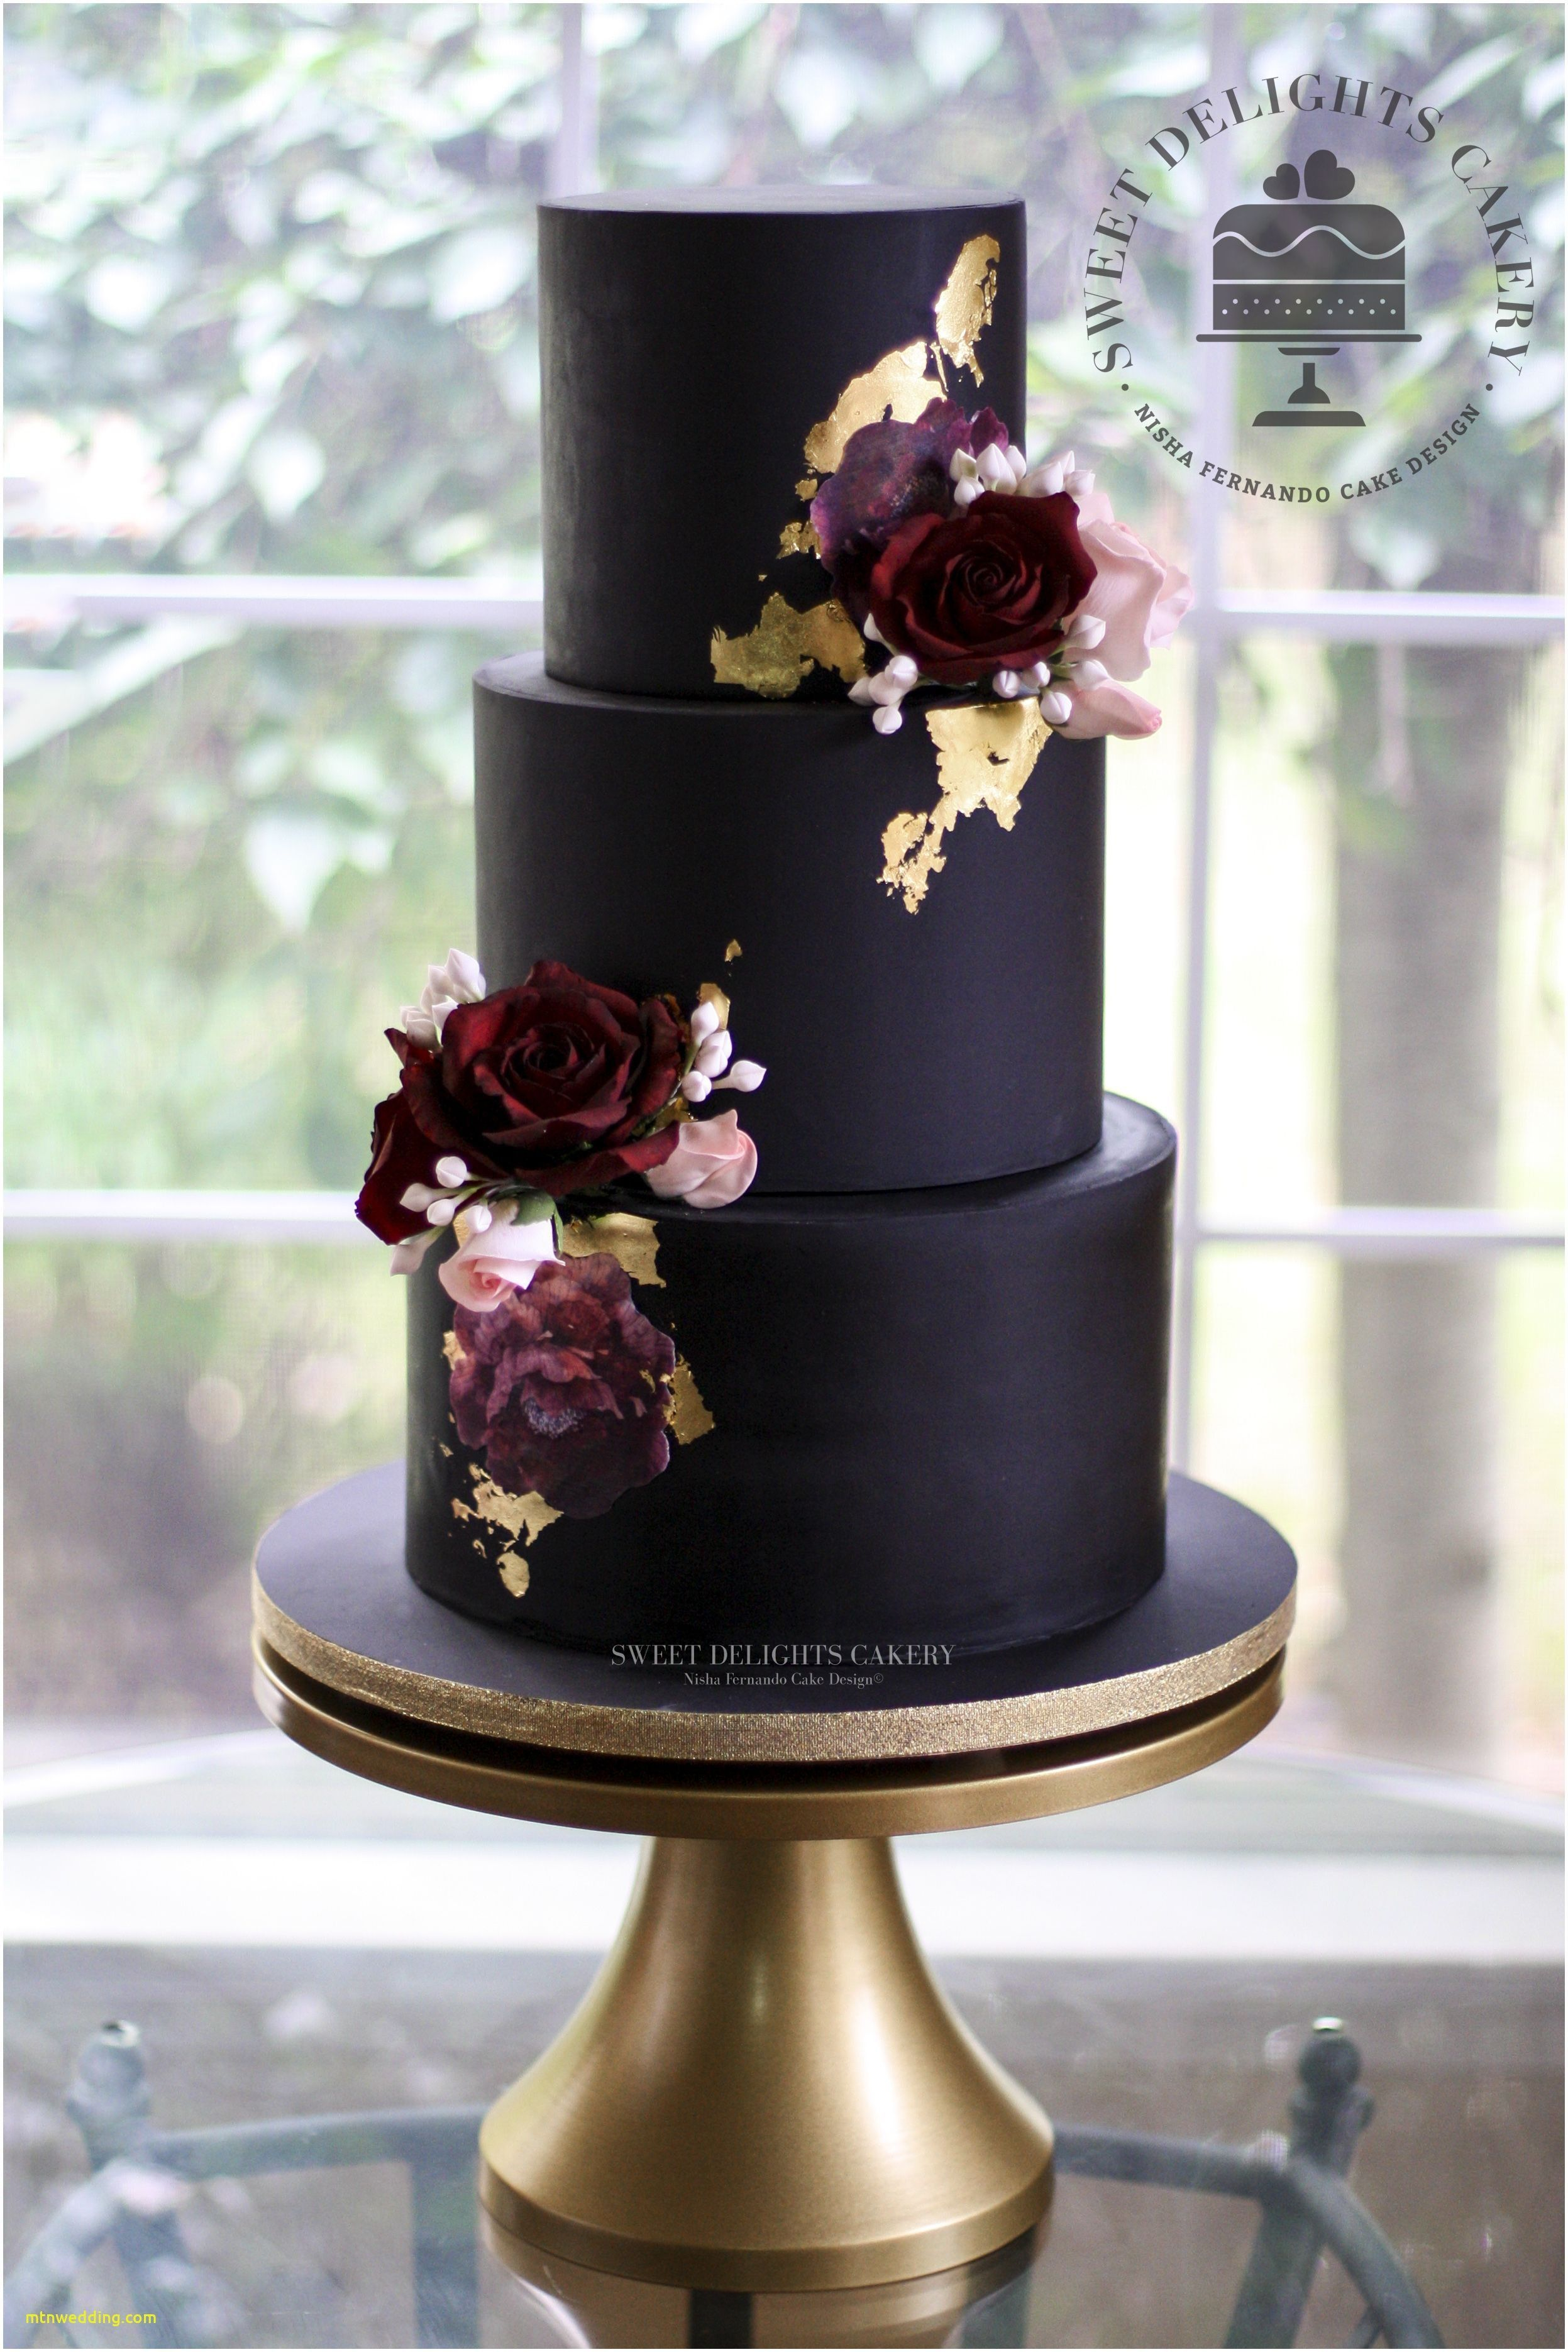 Elegant Golden Wedding Cake Decorating Ideas Halloween Wedding Cakes Wedding Cake Stands Wedding Cake Decorations